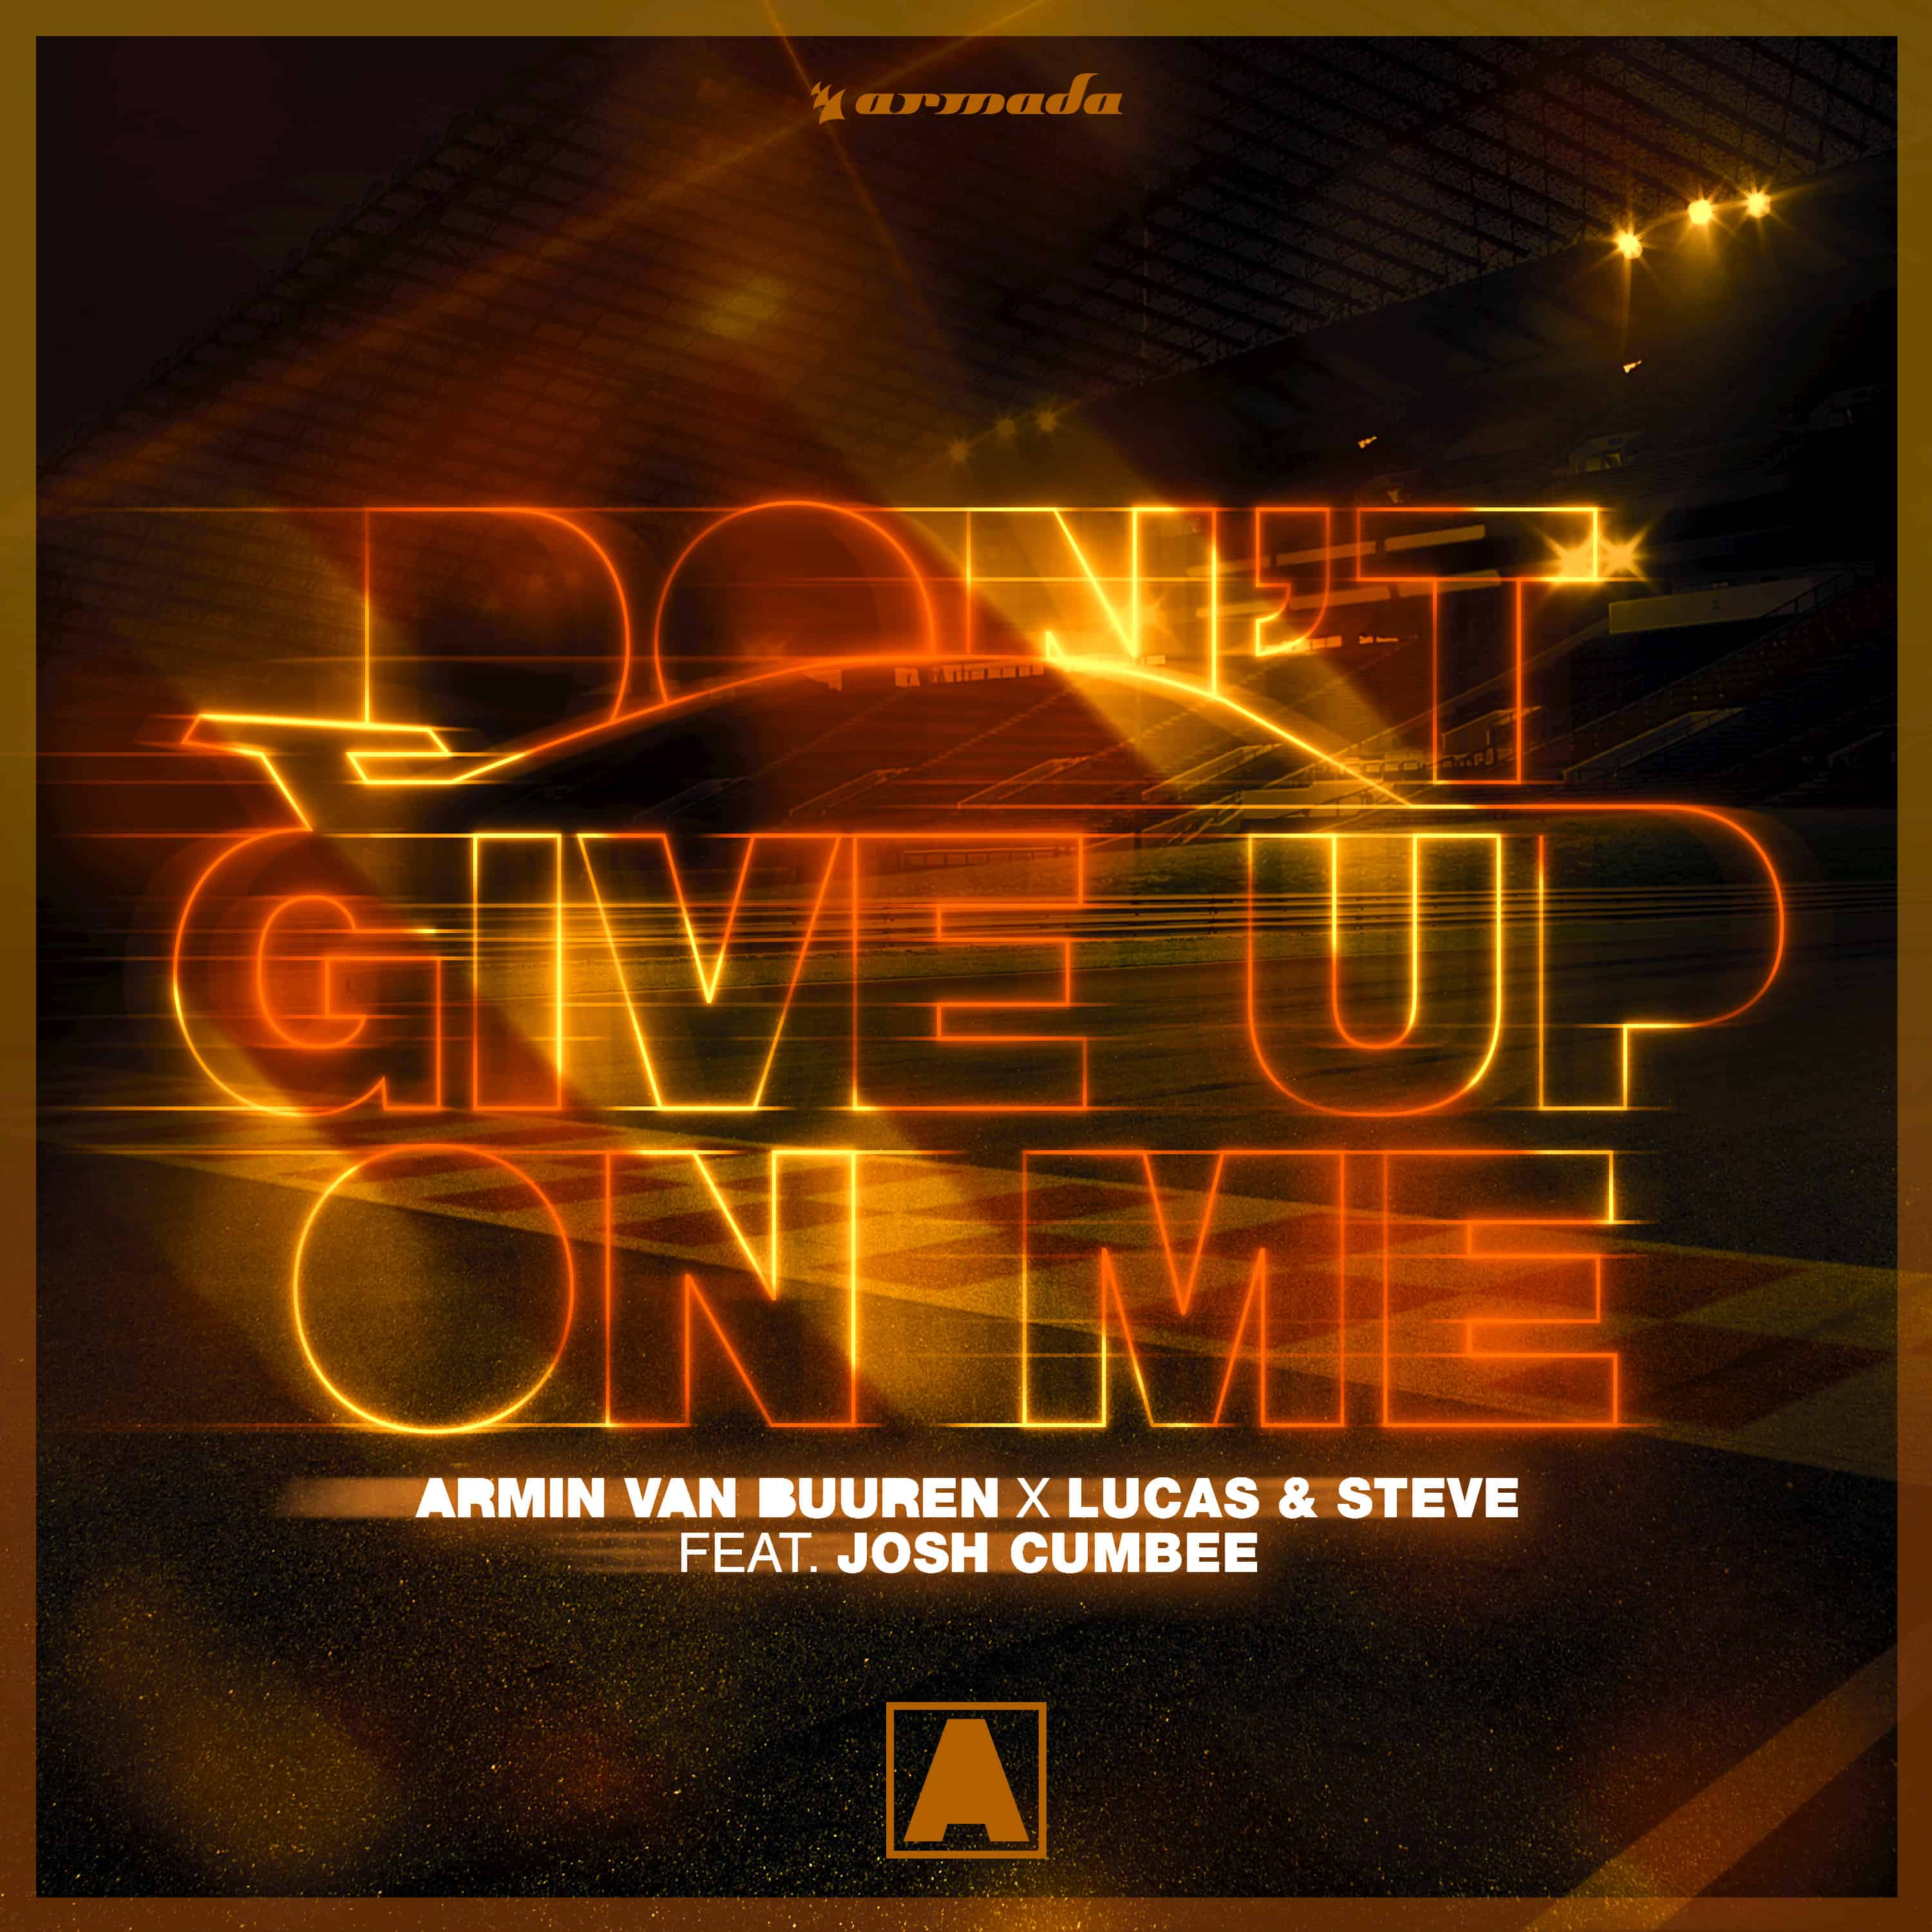 Armin van Buuren teams up with Lucas & Steve for 'Don't Give Up On Me'